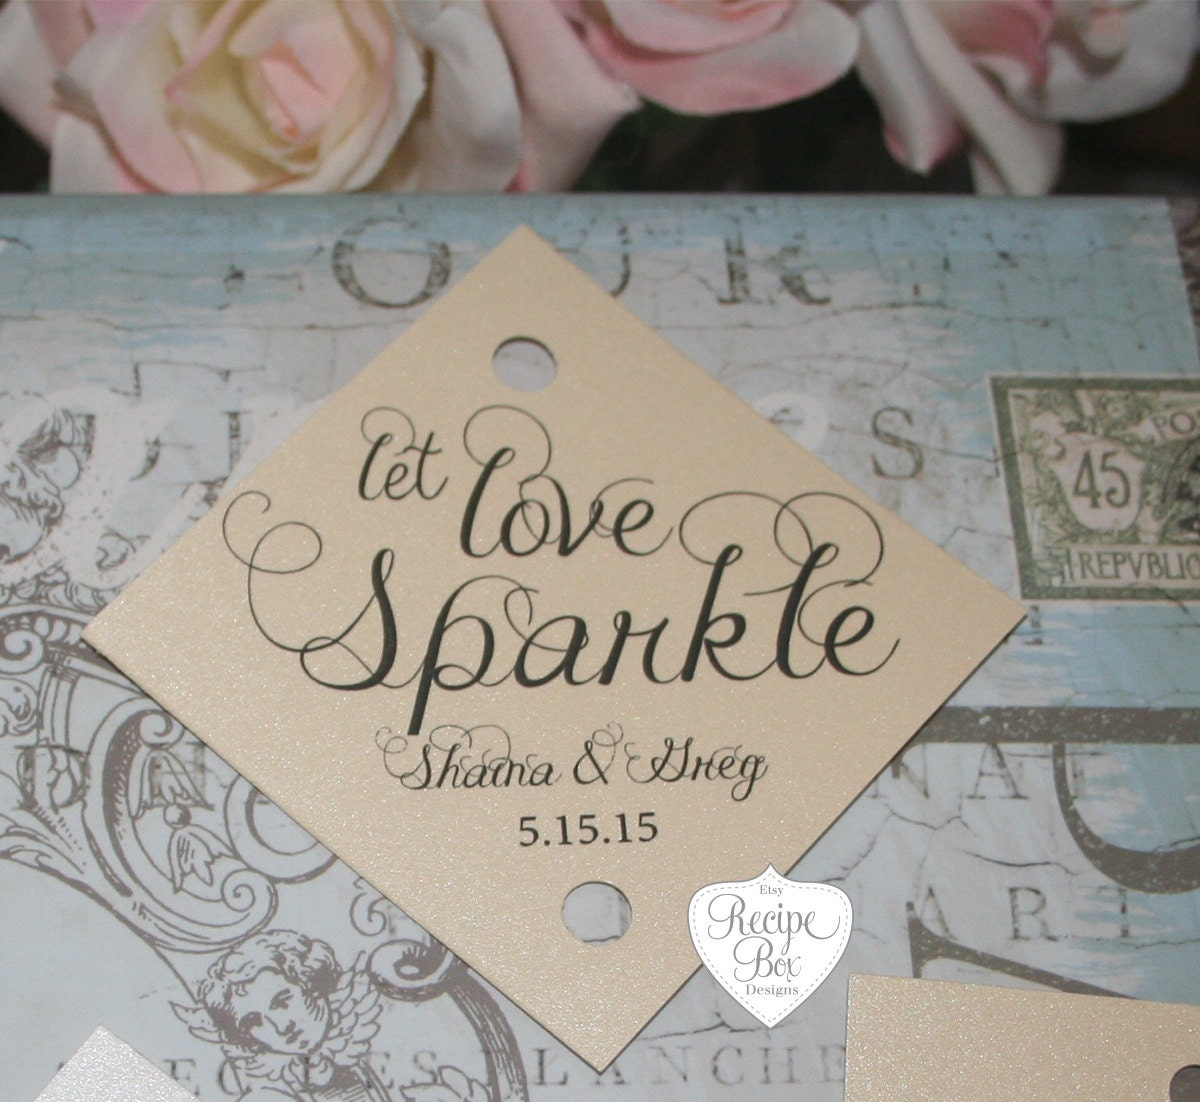 Sparkler Tag Wedding Tags 150 Pieces Let Love